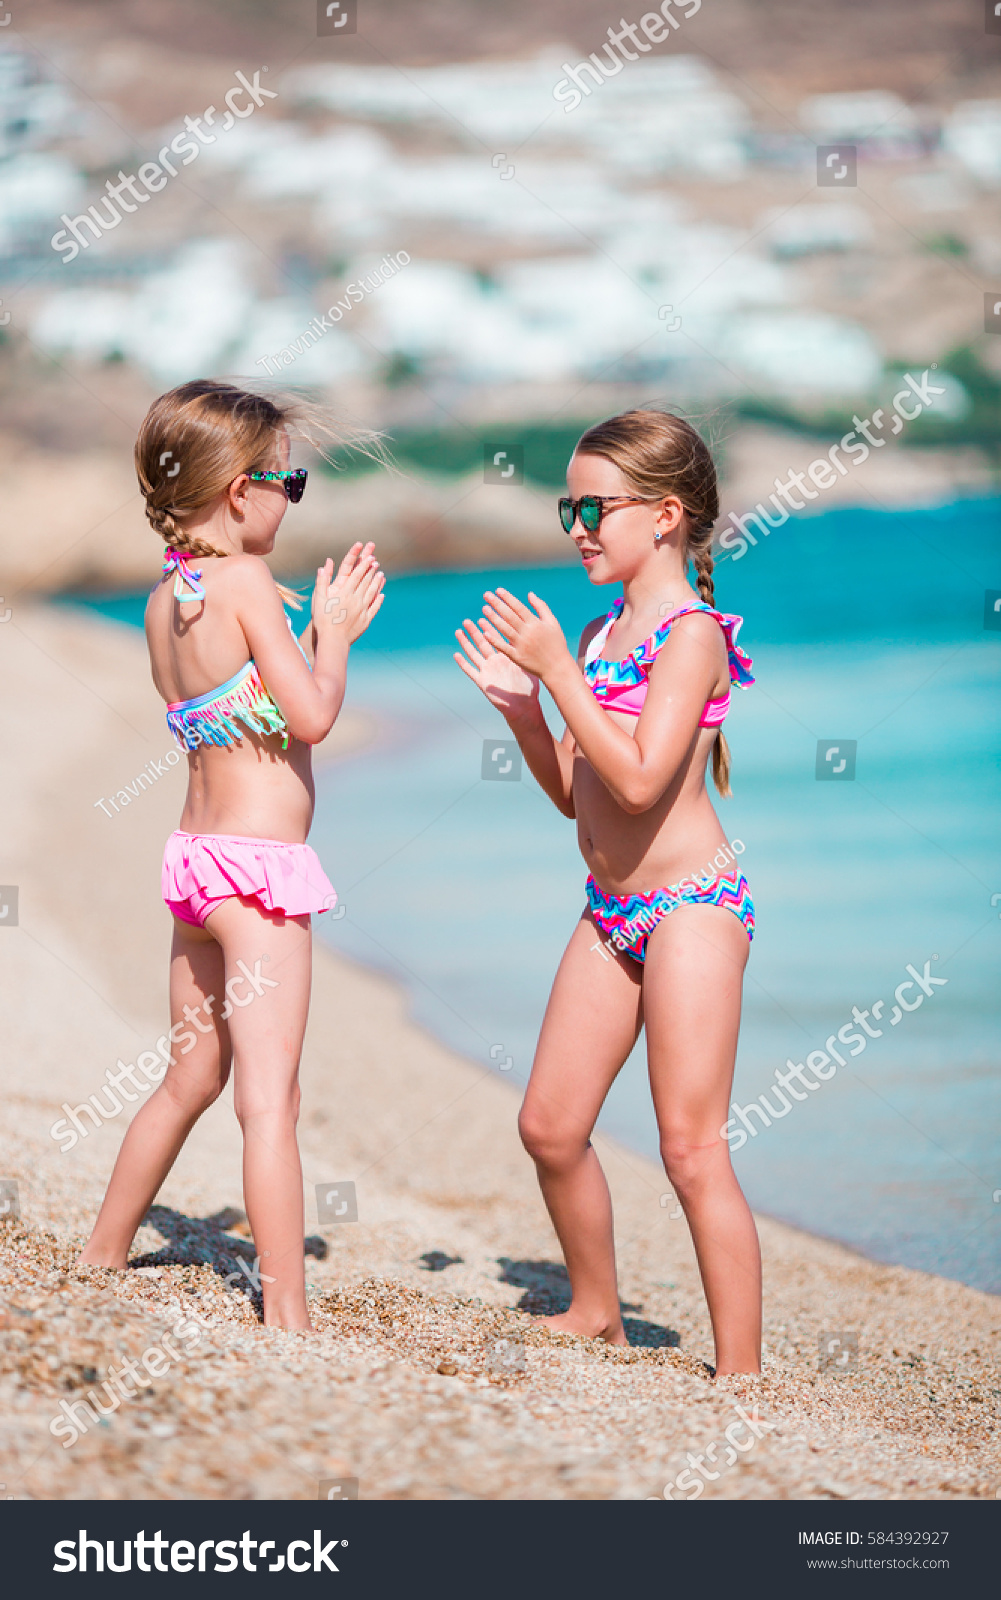 39372a9188c6c Adorable Little Girls Having Fun During Stock Photo (Edit Now ...